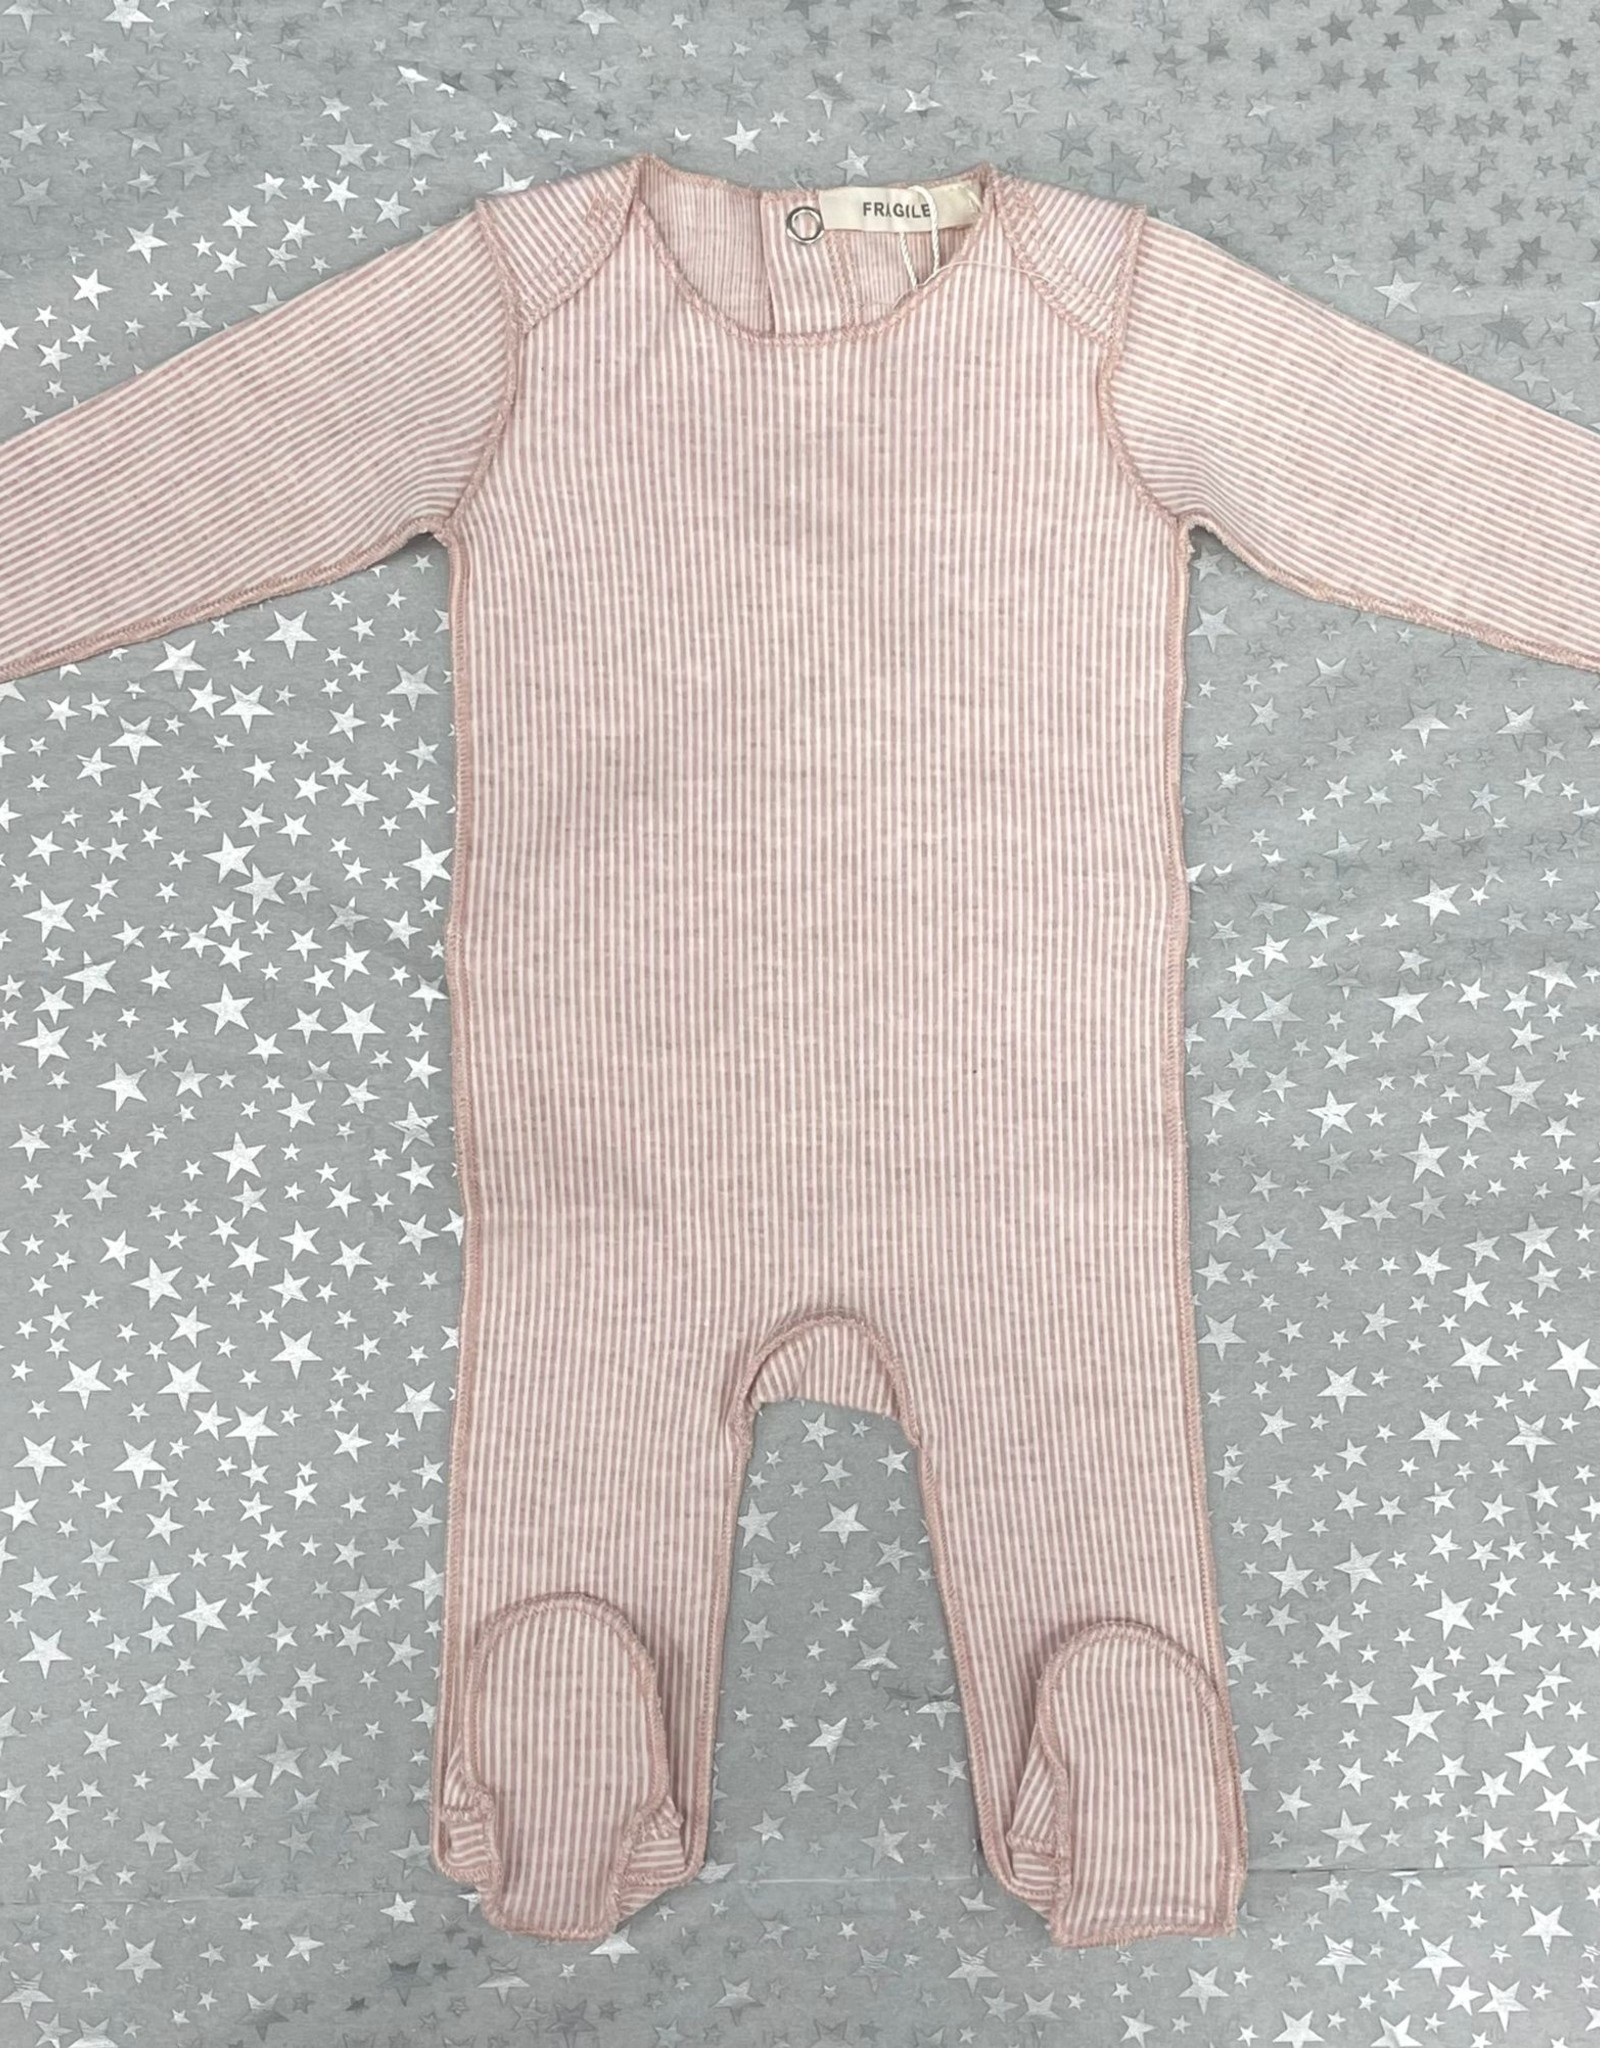 FRAGILE Fragile Thin Ribbed Cotton Footie